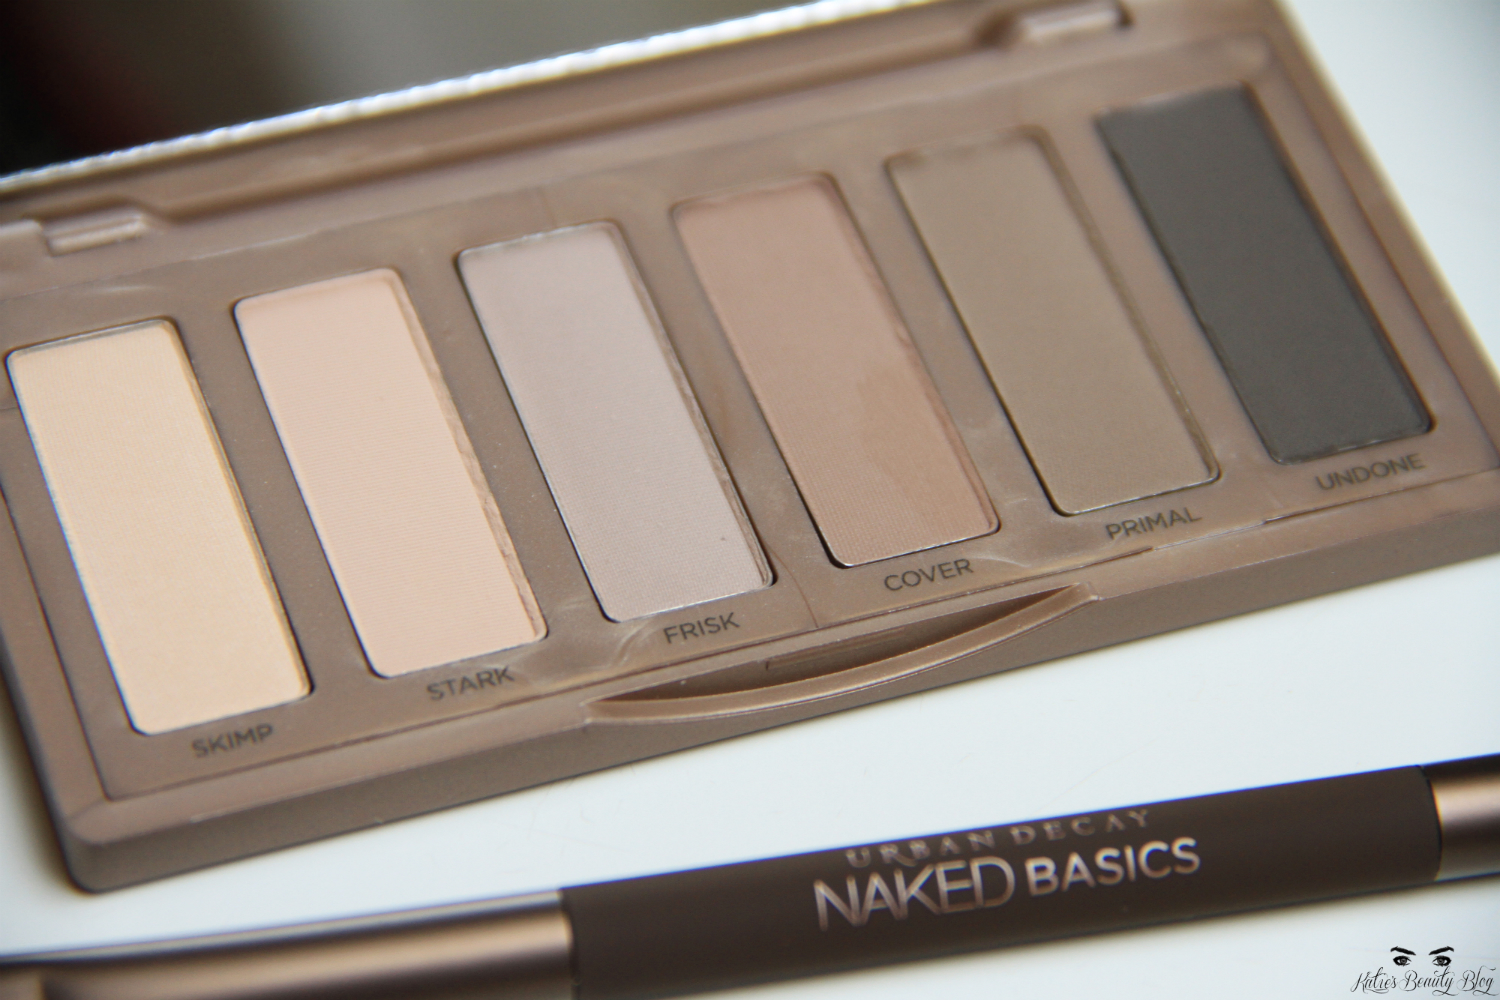 My Pale Skin: Urban Decay Naked 2 Basics Review